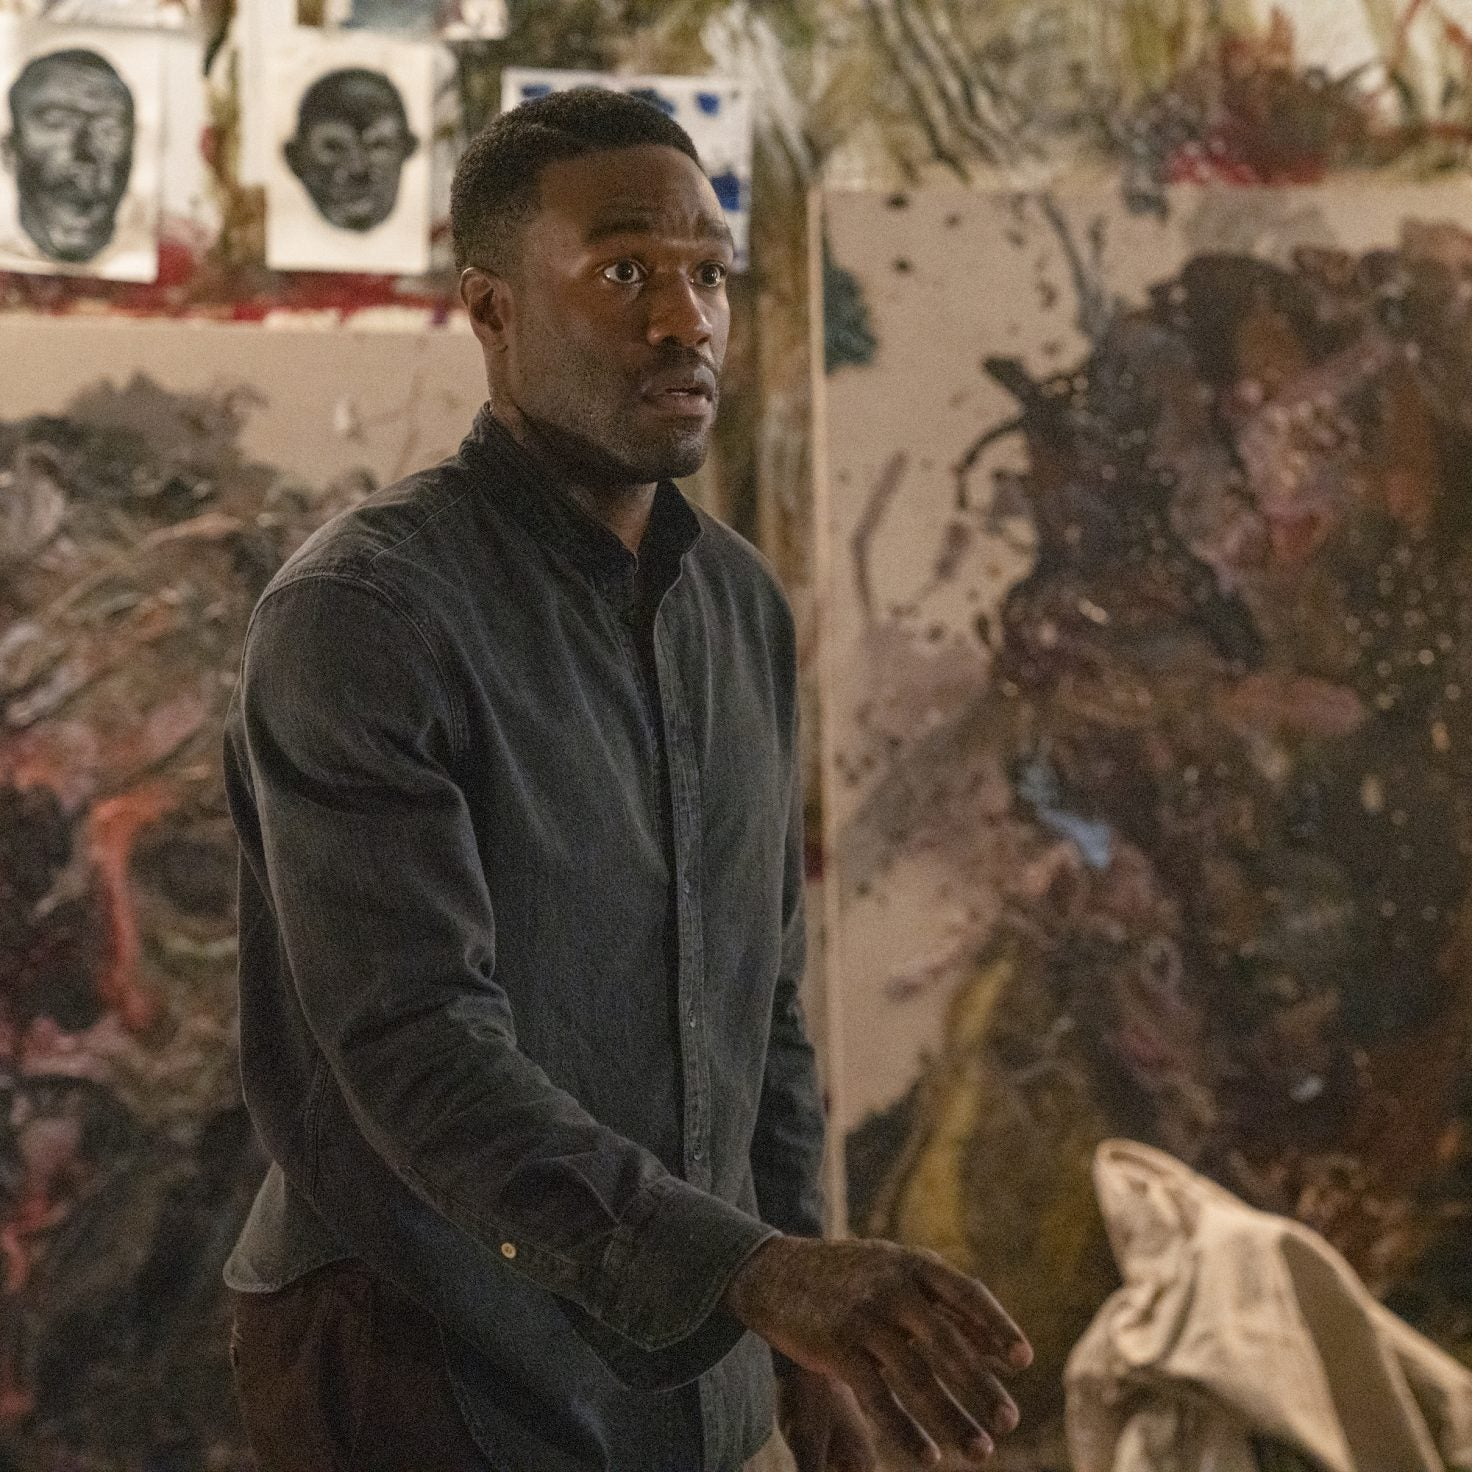 Attention Horror Fans: The New 'Candyman' Is Coming From A Black Woman